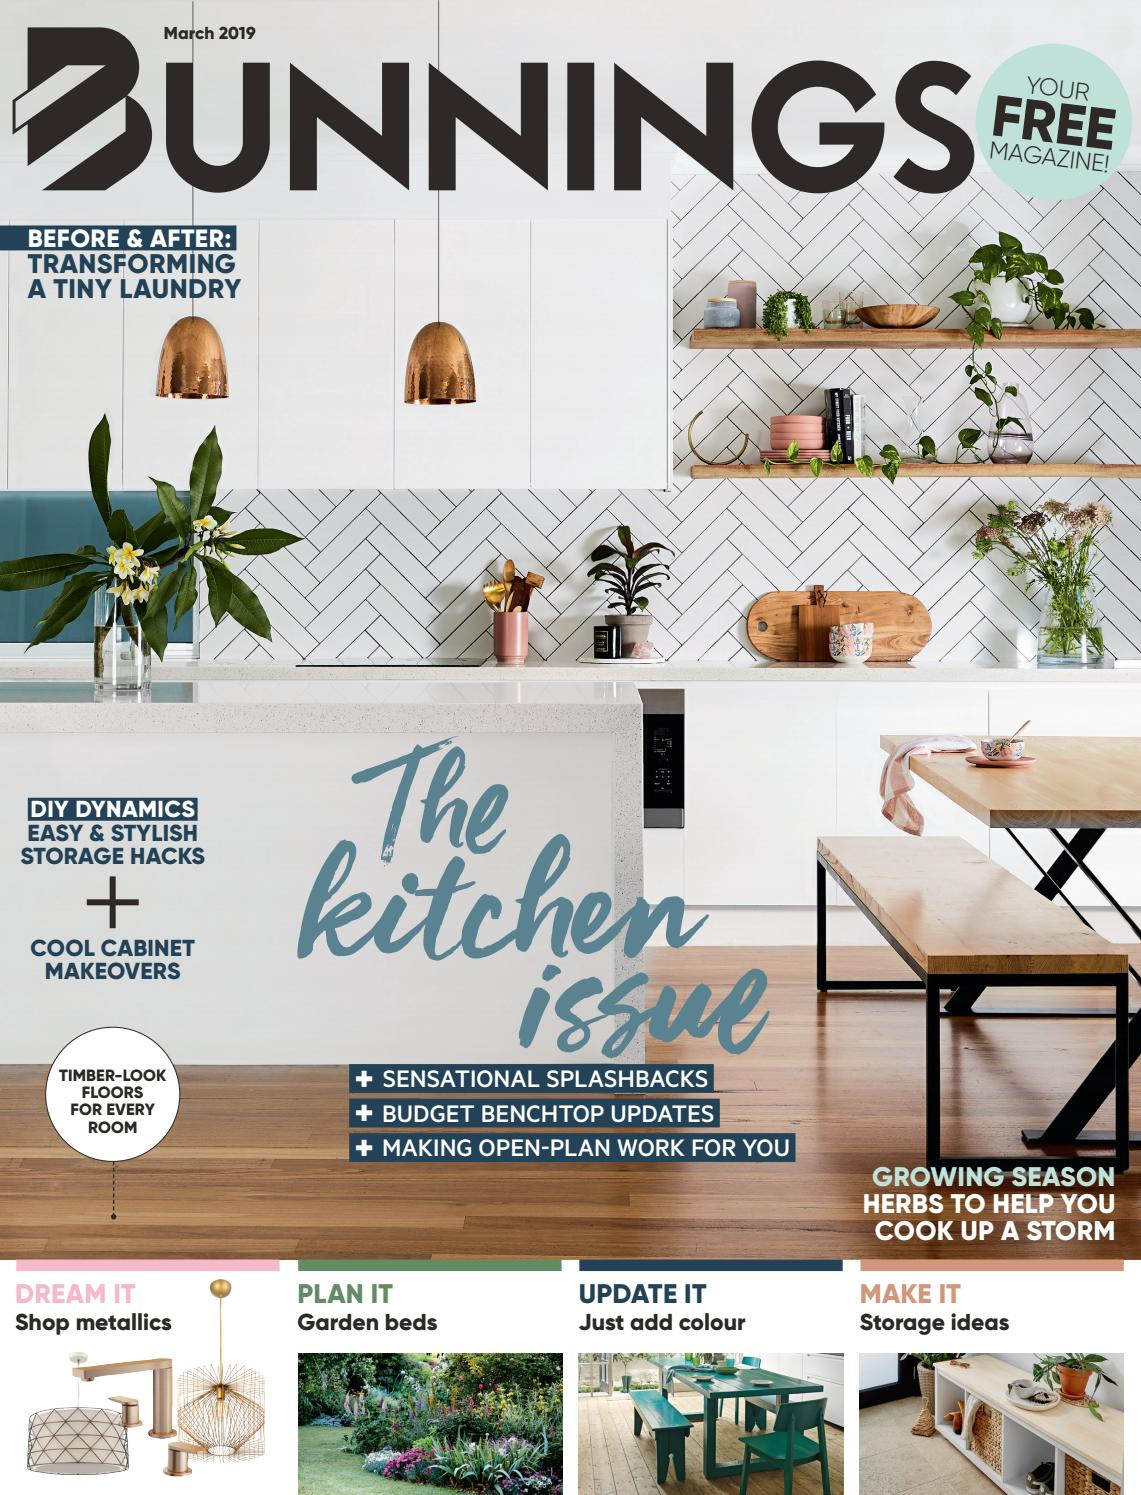 Bunnings Door Lock Installation Kit Bunnings Magazine March 2019 By Bunnings Issuu